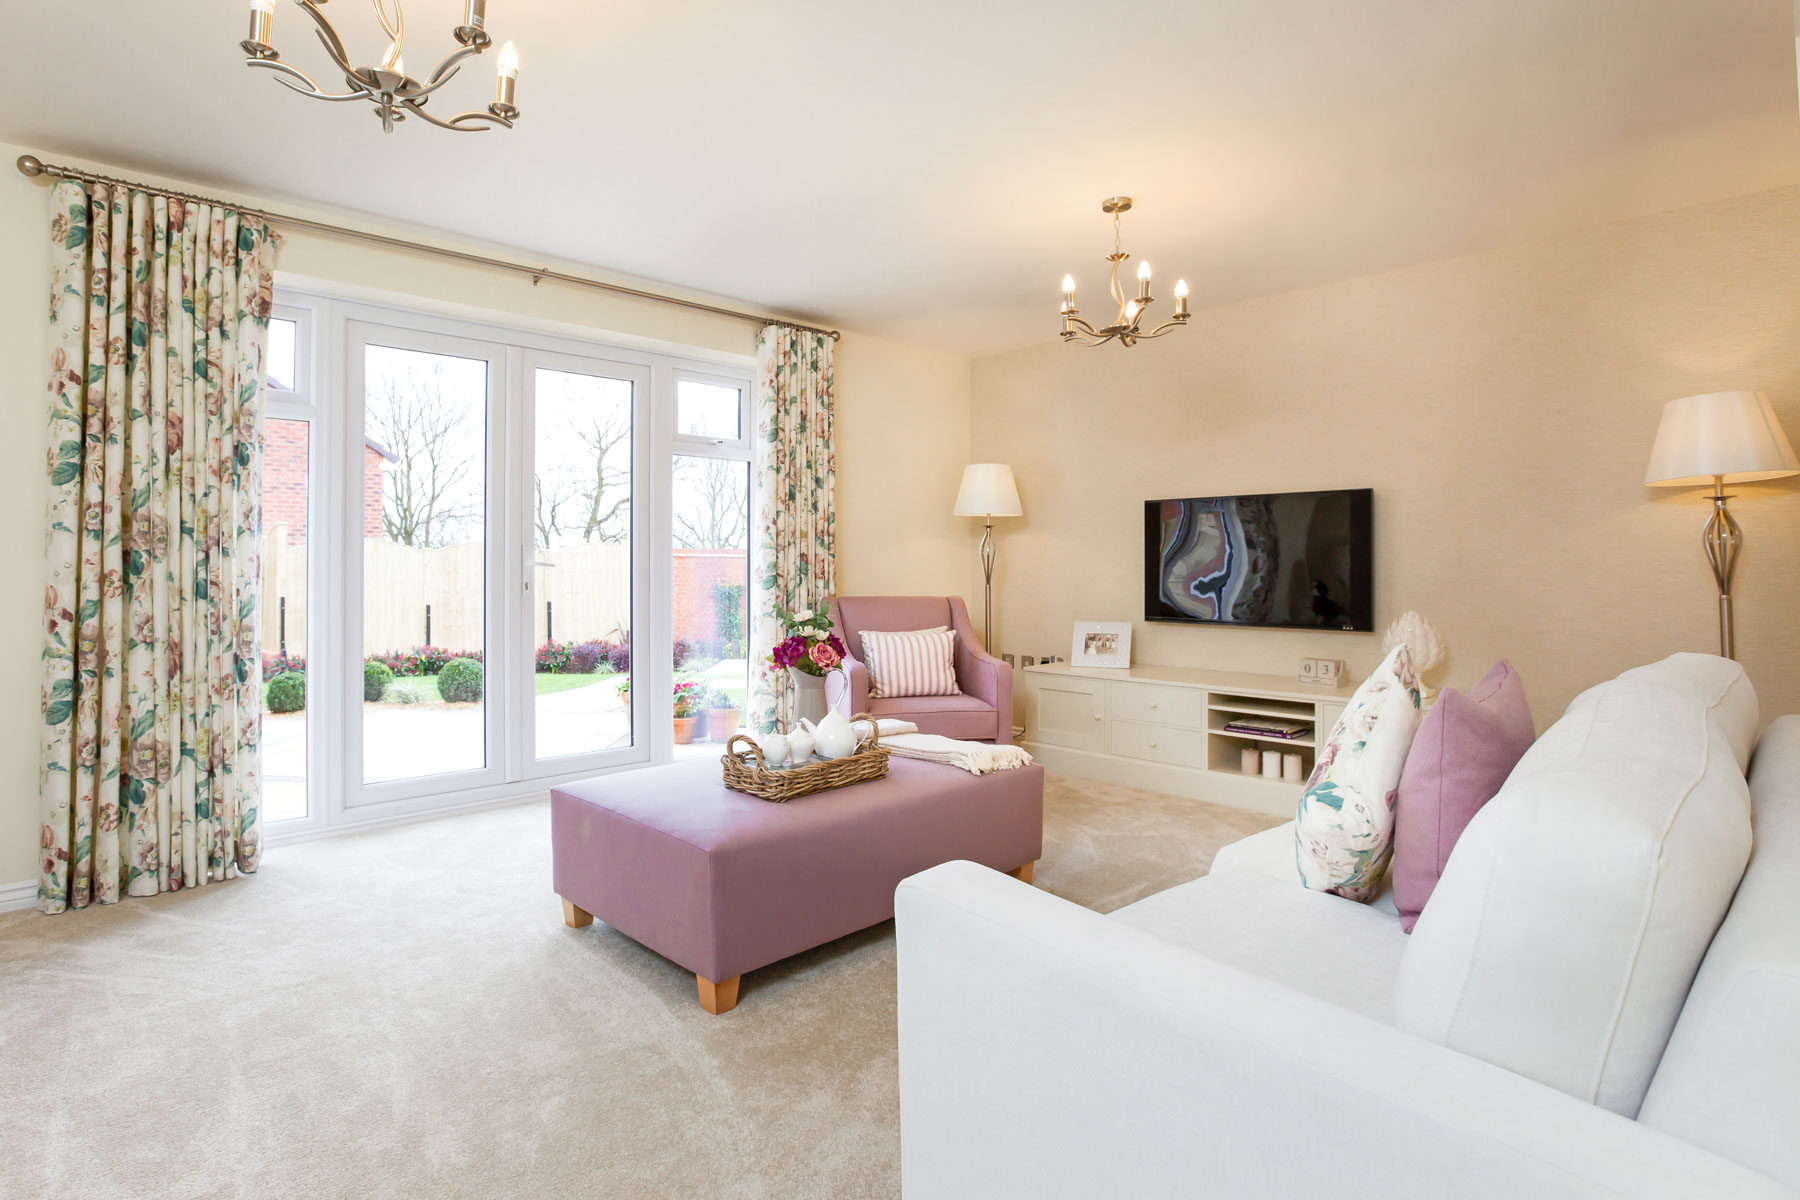 TW Exeter - Gwel An Hay - Monkford example living room 2